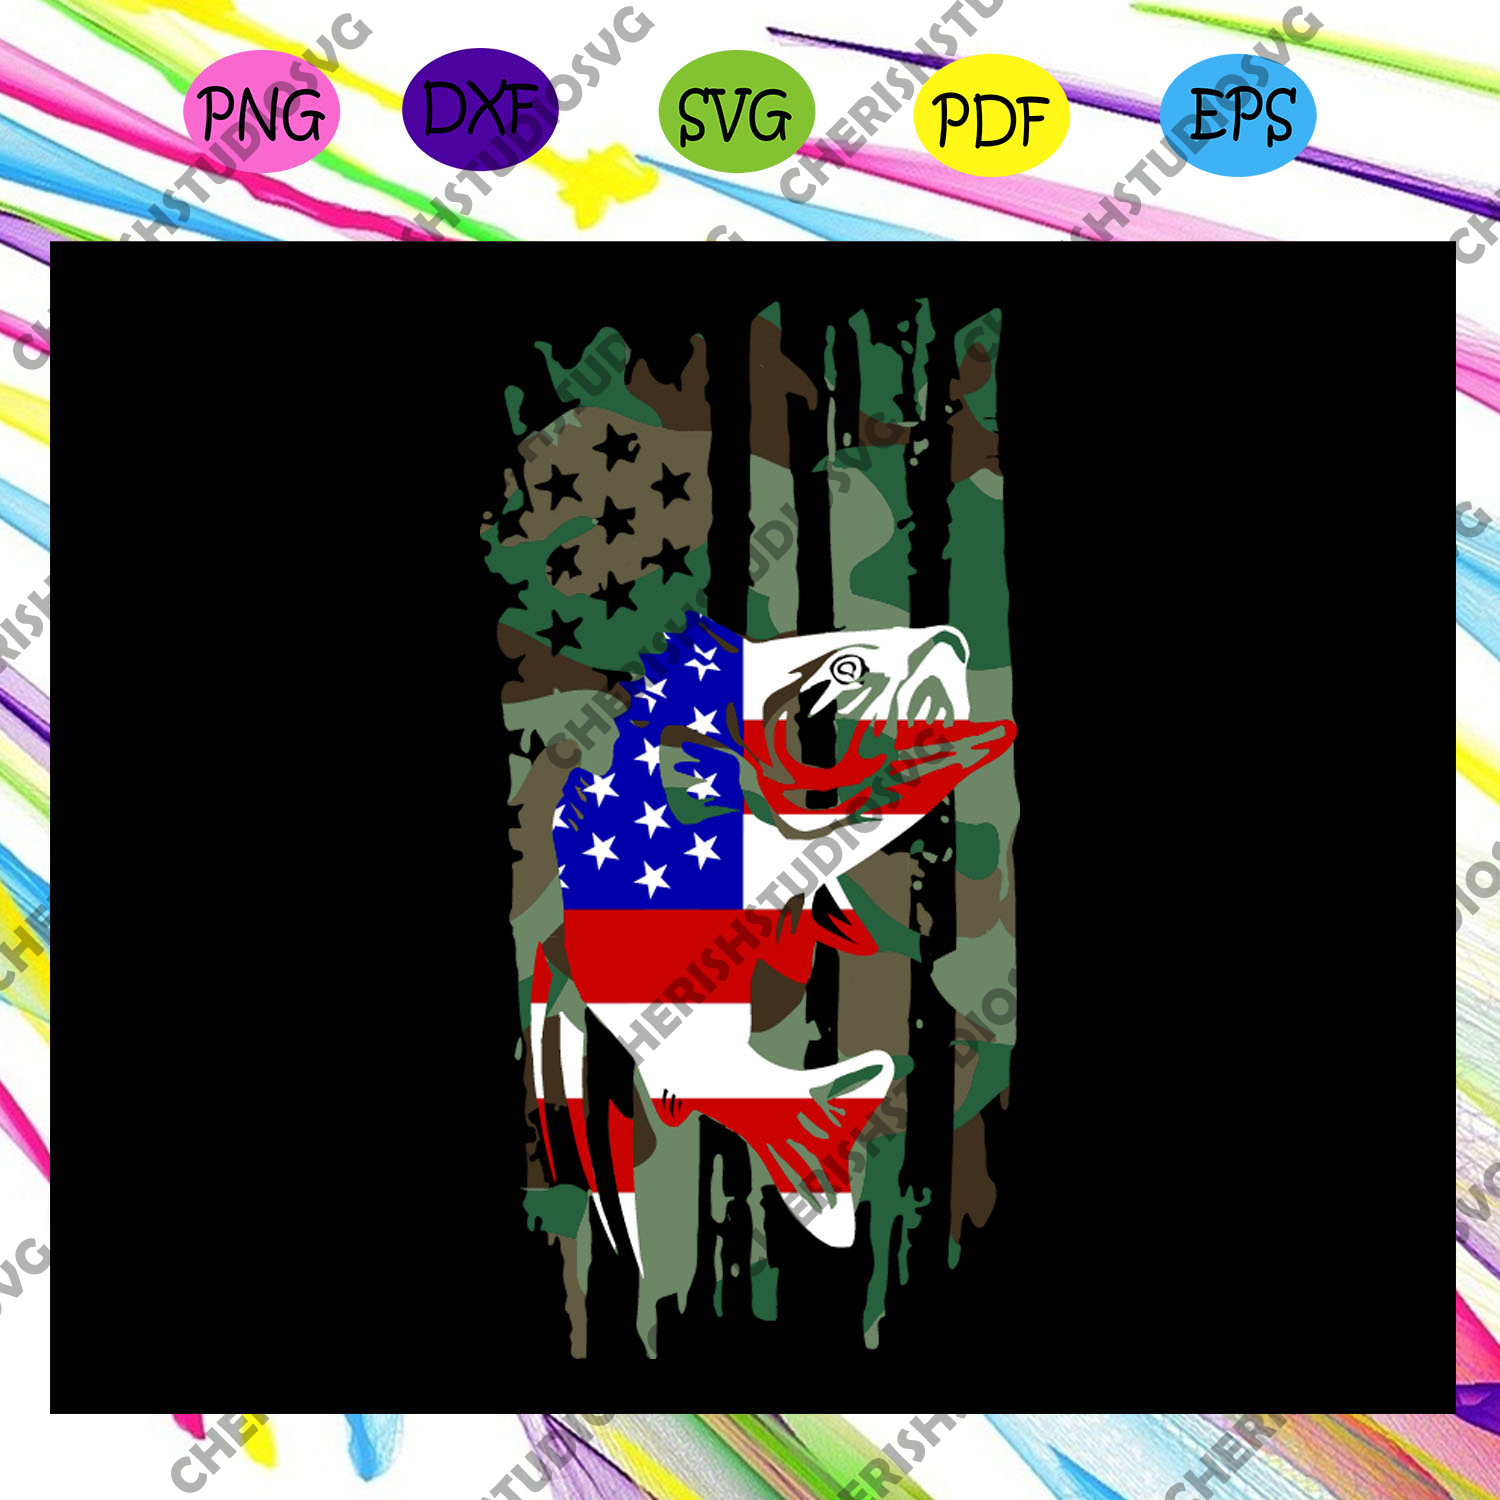 Download Fishing American Flag 4th Of July Svg American Flag Svg Fourth Of Ju Cherishsvgstudio